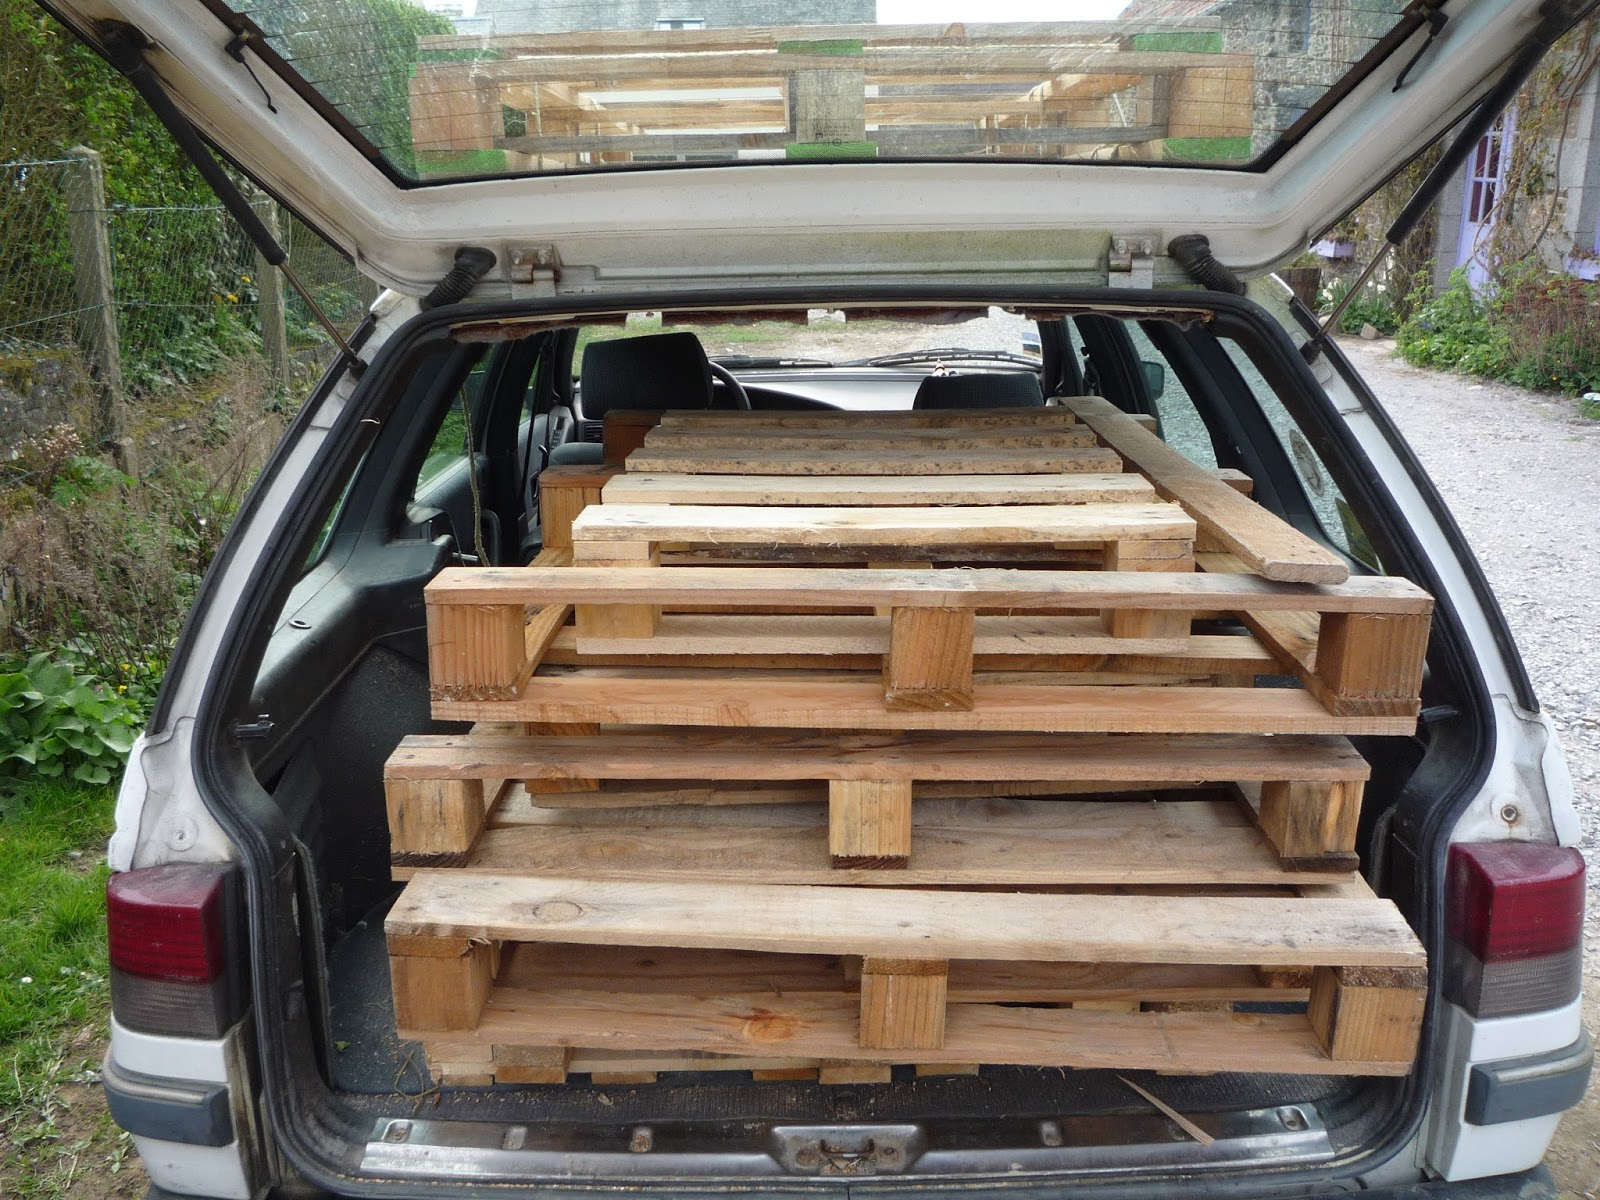 Shooting brake - Hunting for pallets